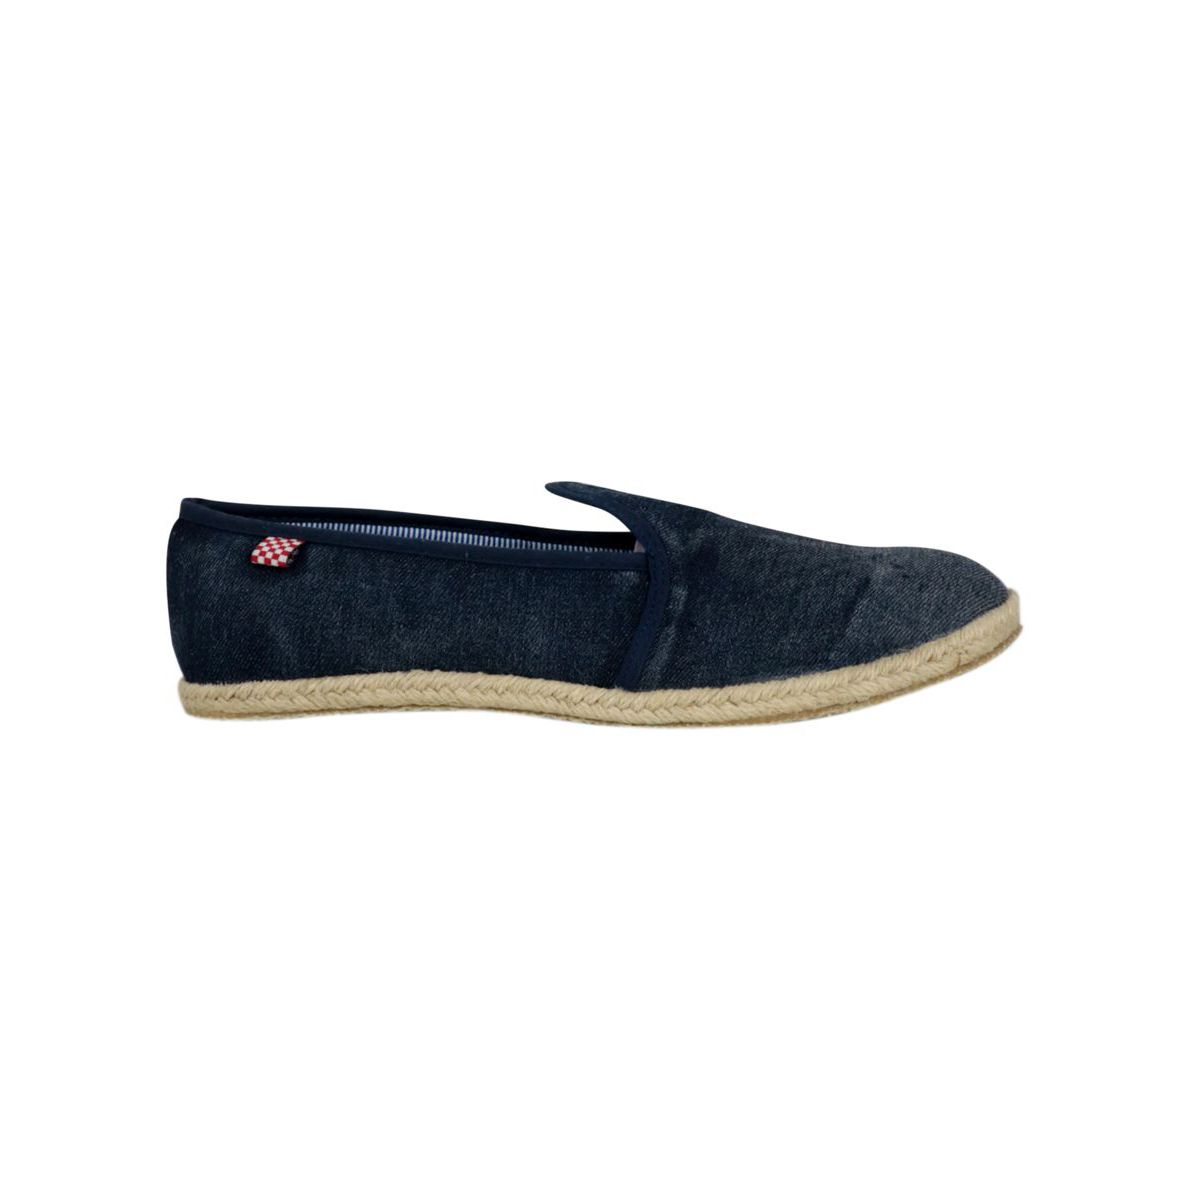 Cruise espadrilles in canvas Denim MC2 Saint Barth